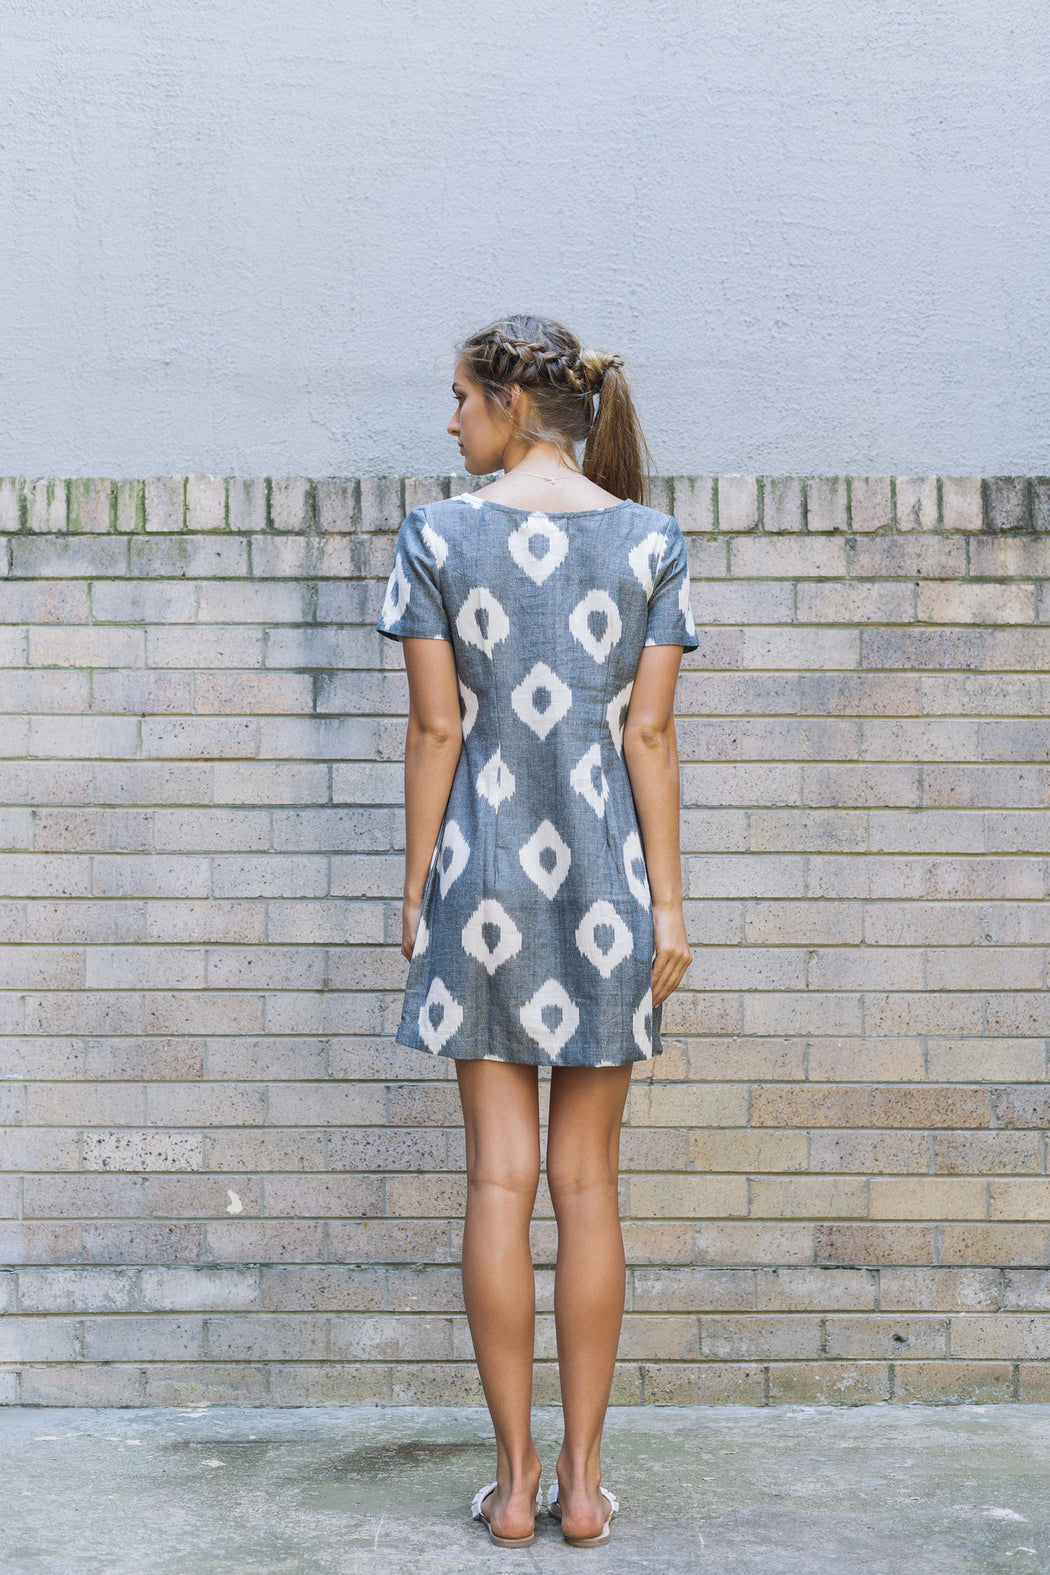 New Best Friend Dress - Black Spot